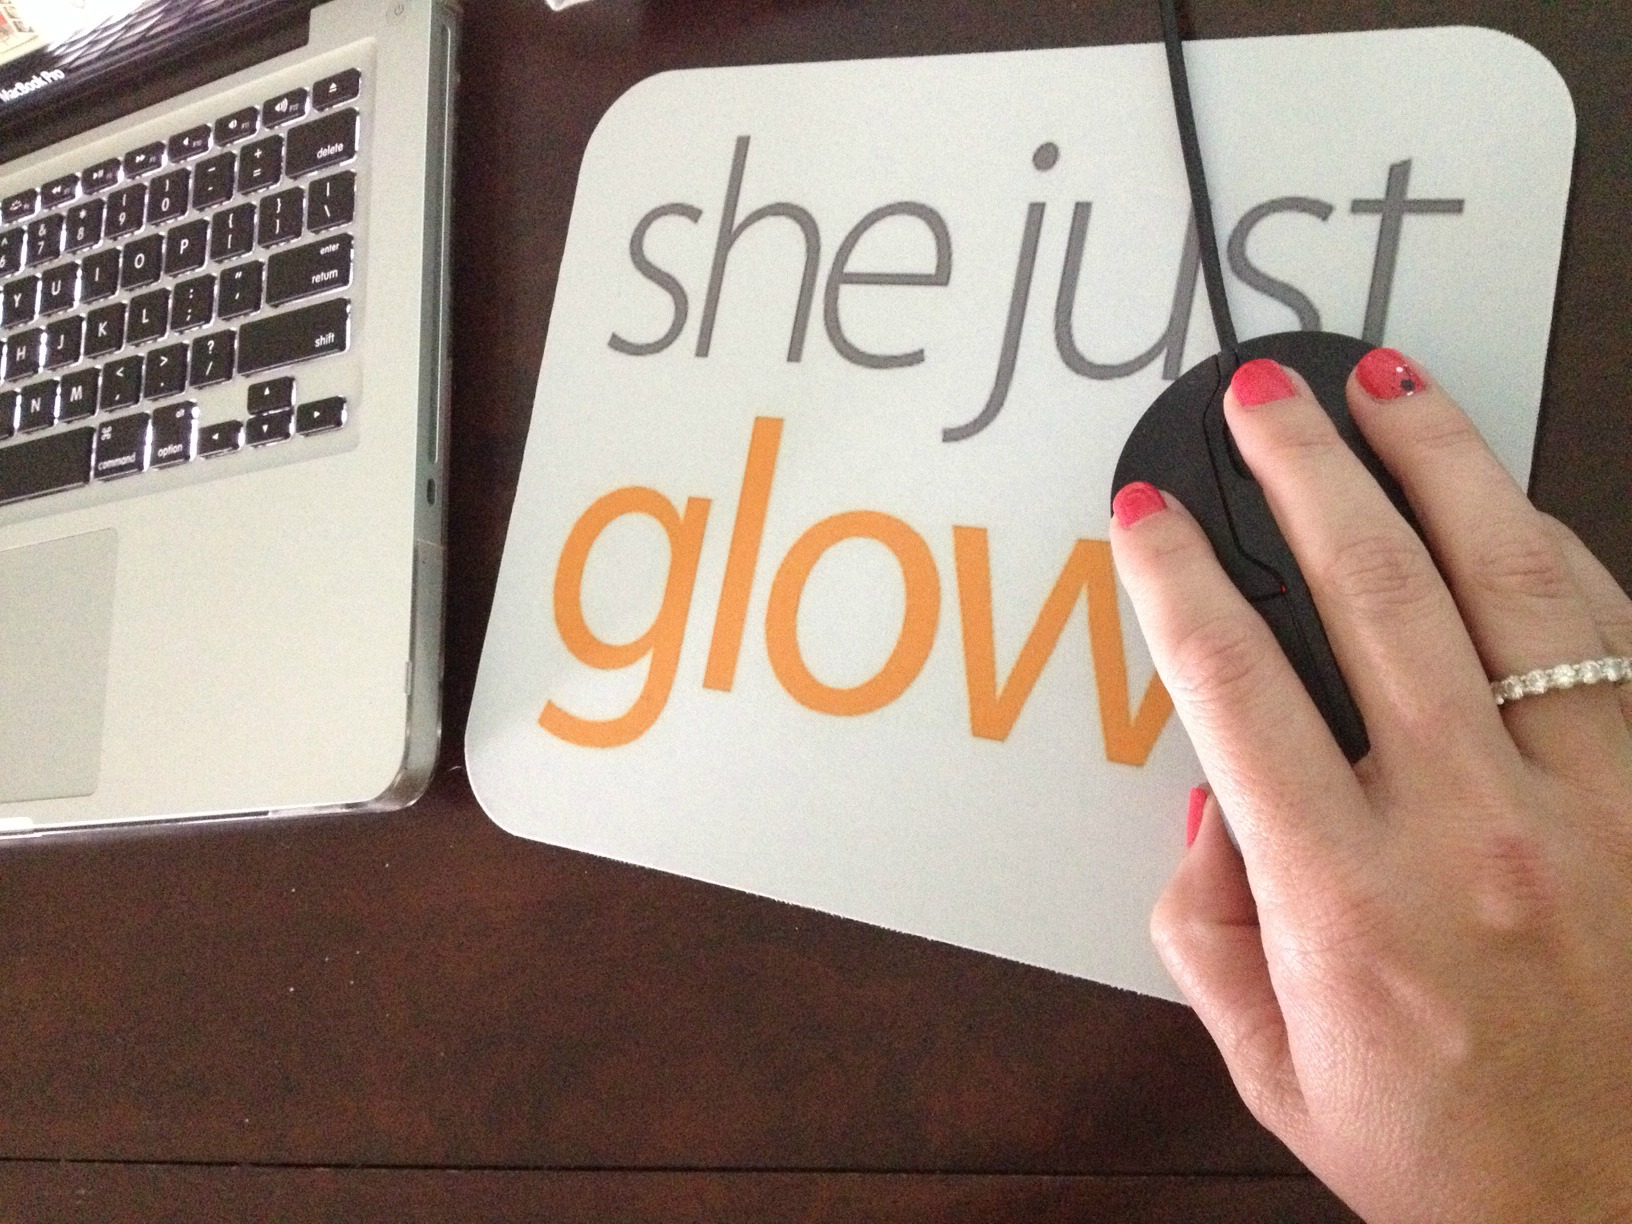 Things That Make You Glow: Finding Simple Joys Everyday SheJustGlows.com